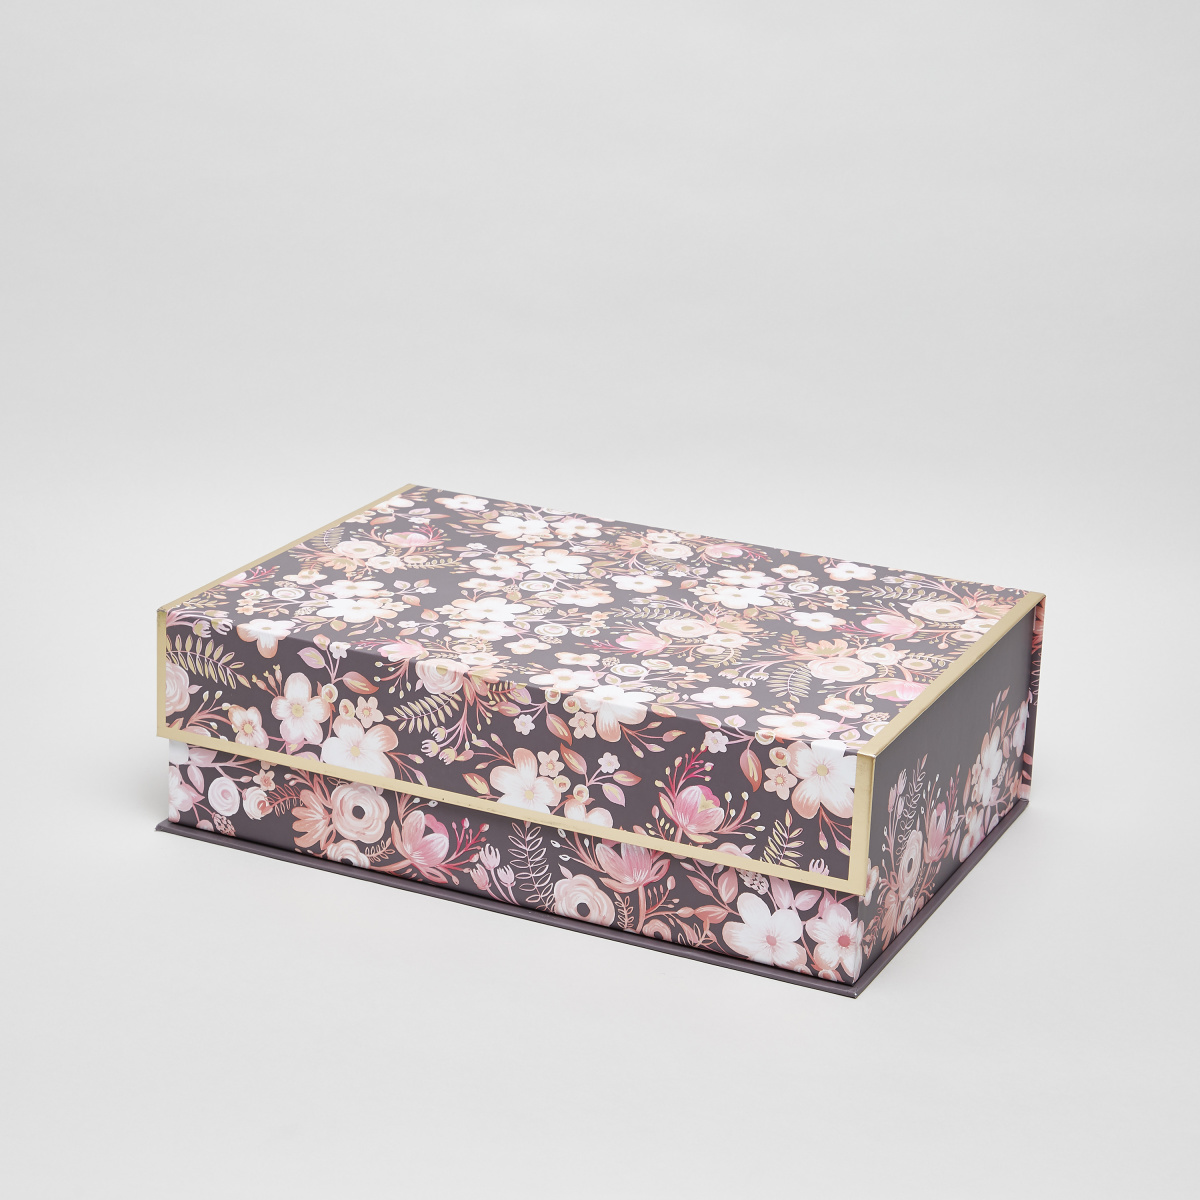 Gray Dusty Floral Print Nested Box - 43x30x3 cms